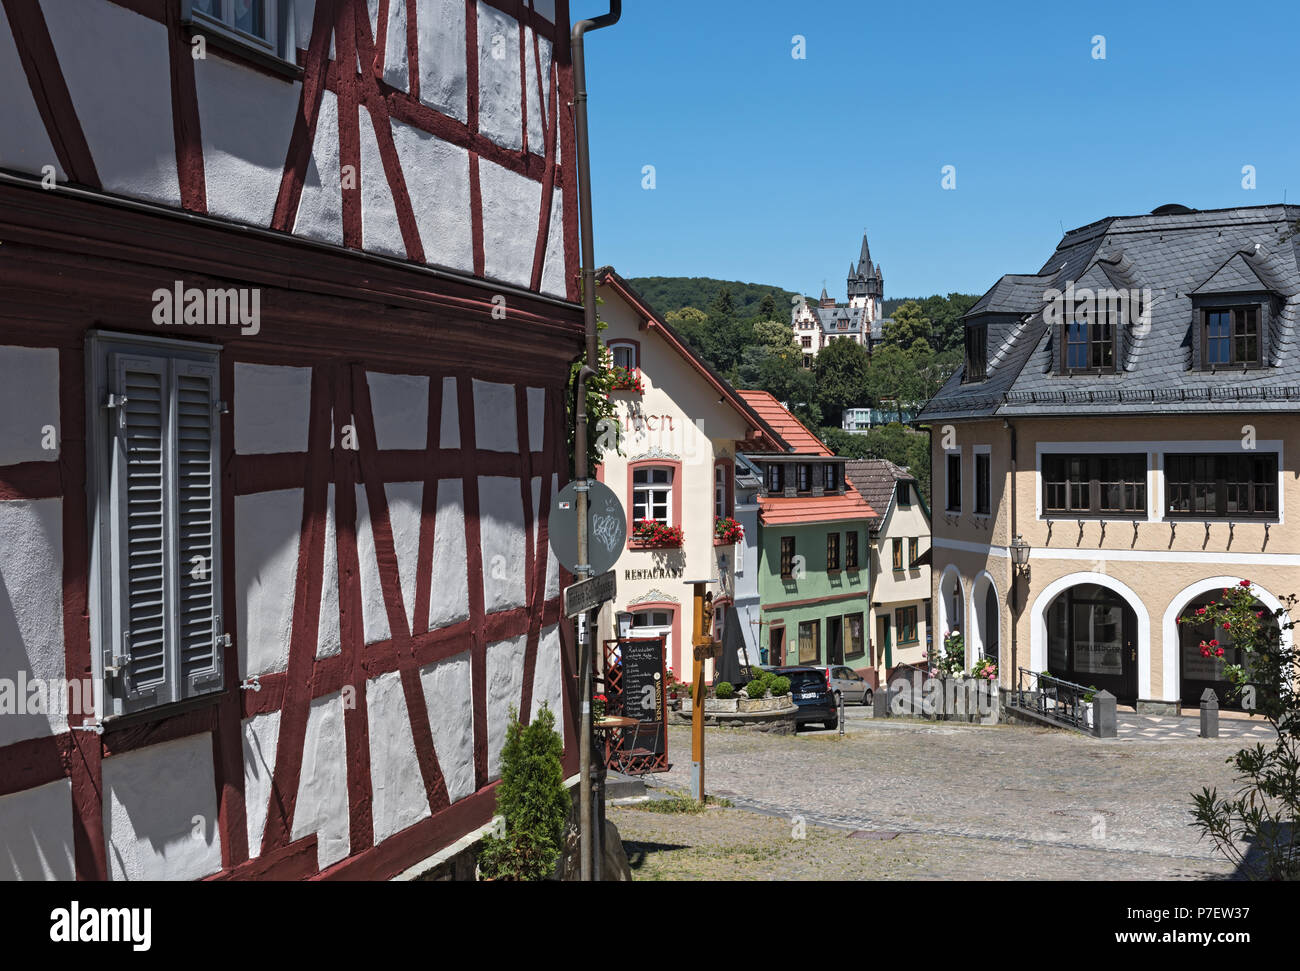 small square with old houses at Konigstein old town, Hesse, Germany - Stock Image